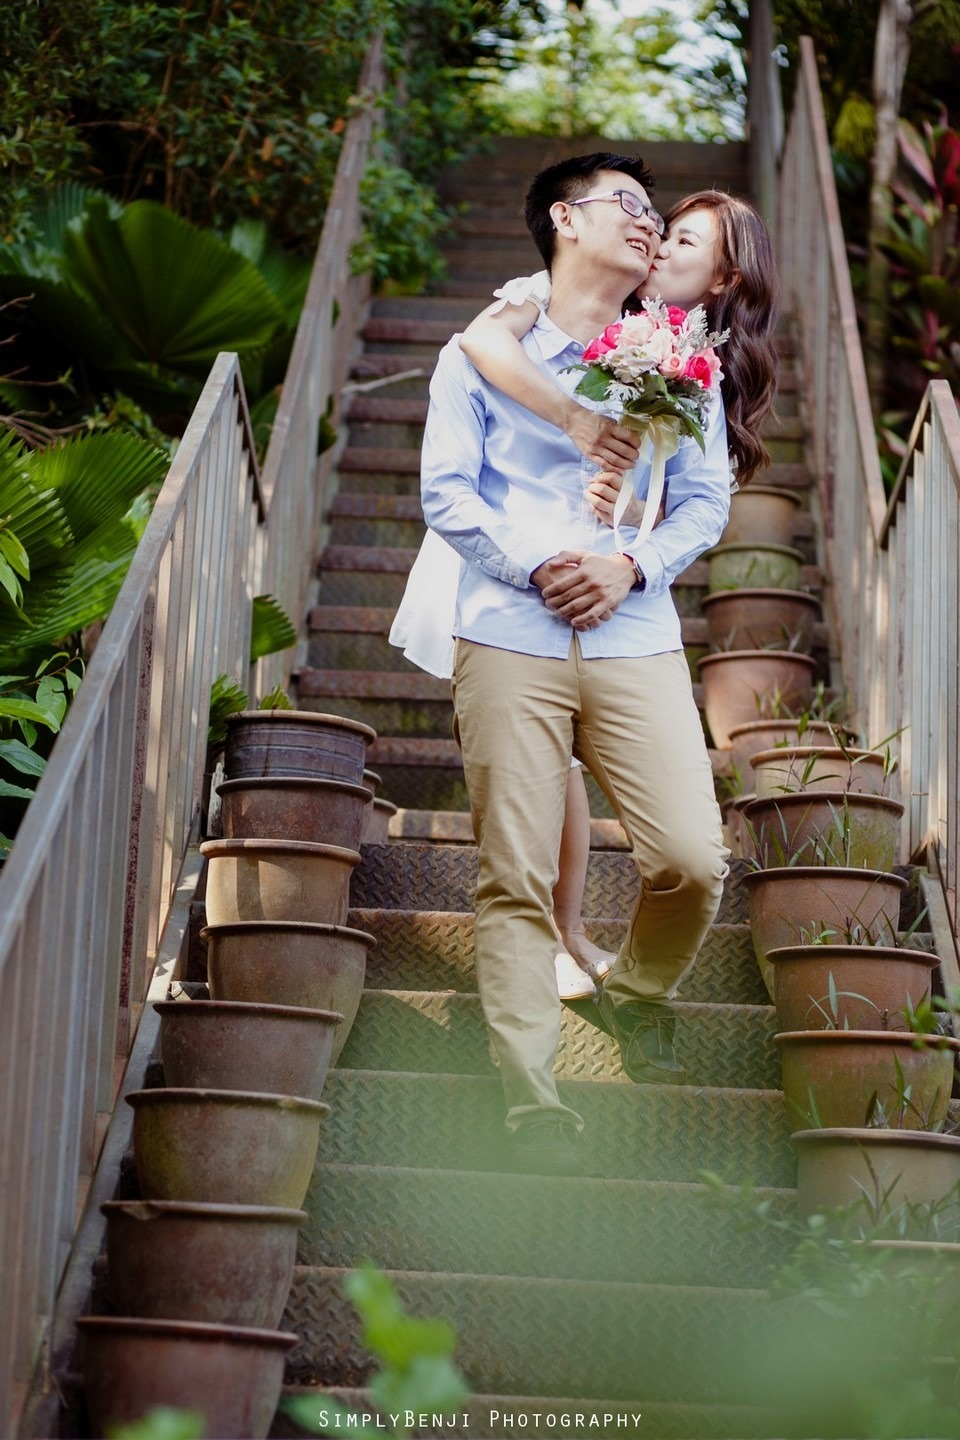 ROM Thean Hou Temple Engagement Portrait _KL Wedding Photographer Malaysia_001